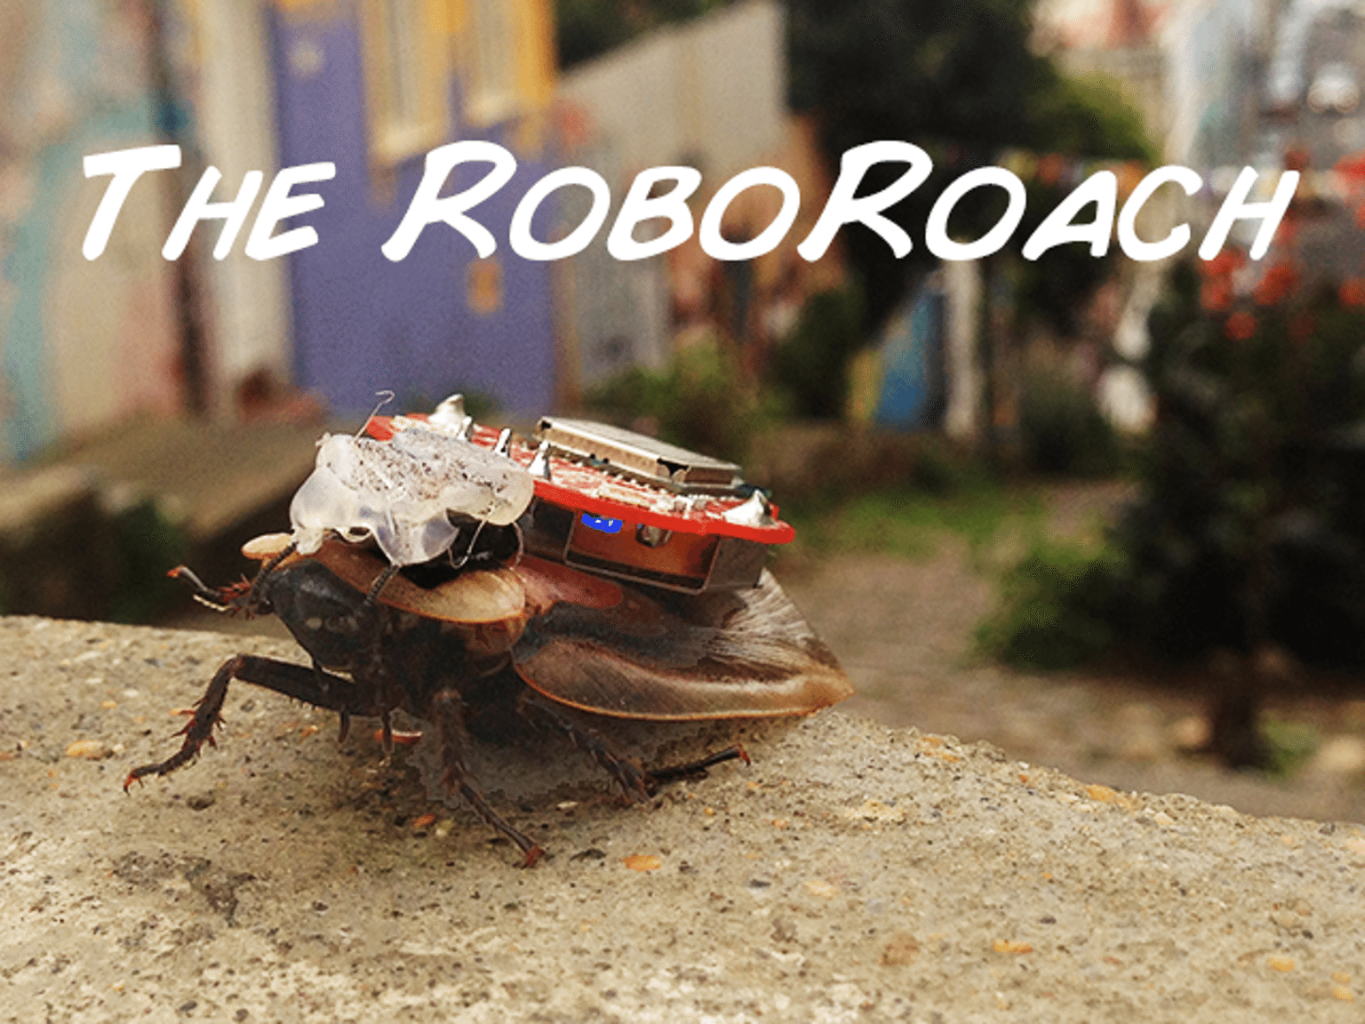 Image: Neuroscience made fun with robo roach